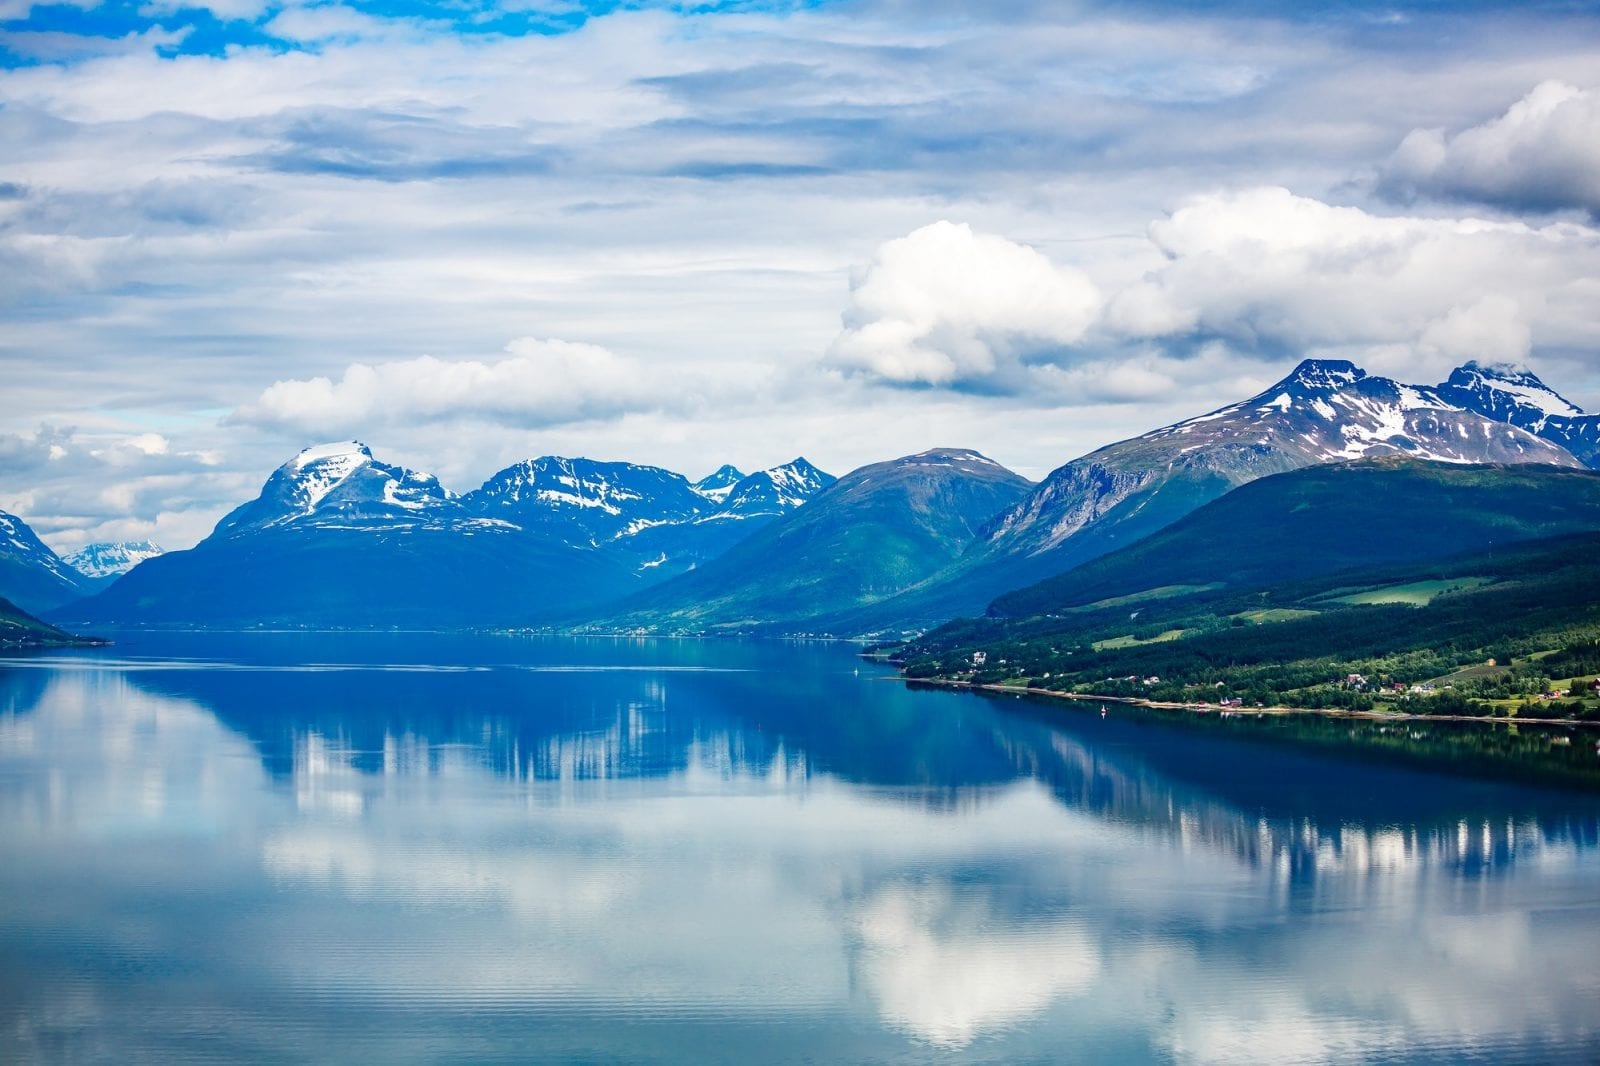 Ocean and mountains landscape